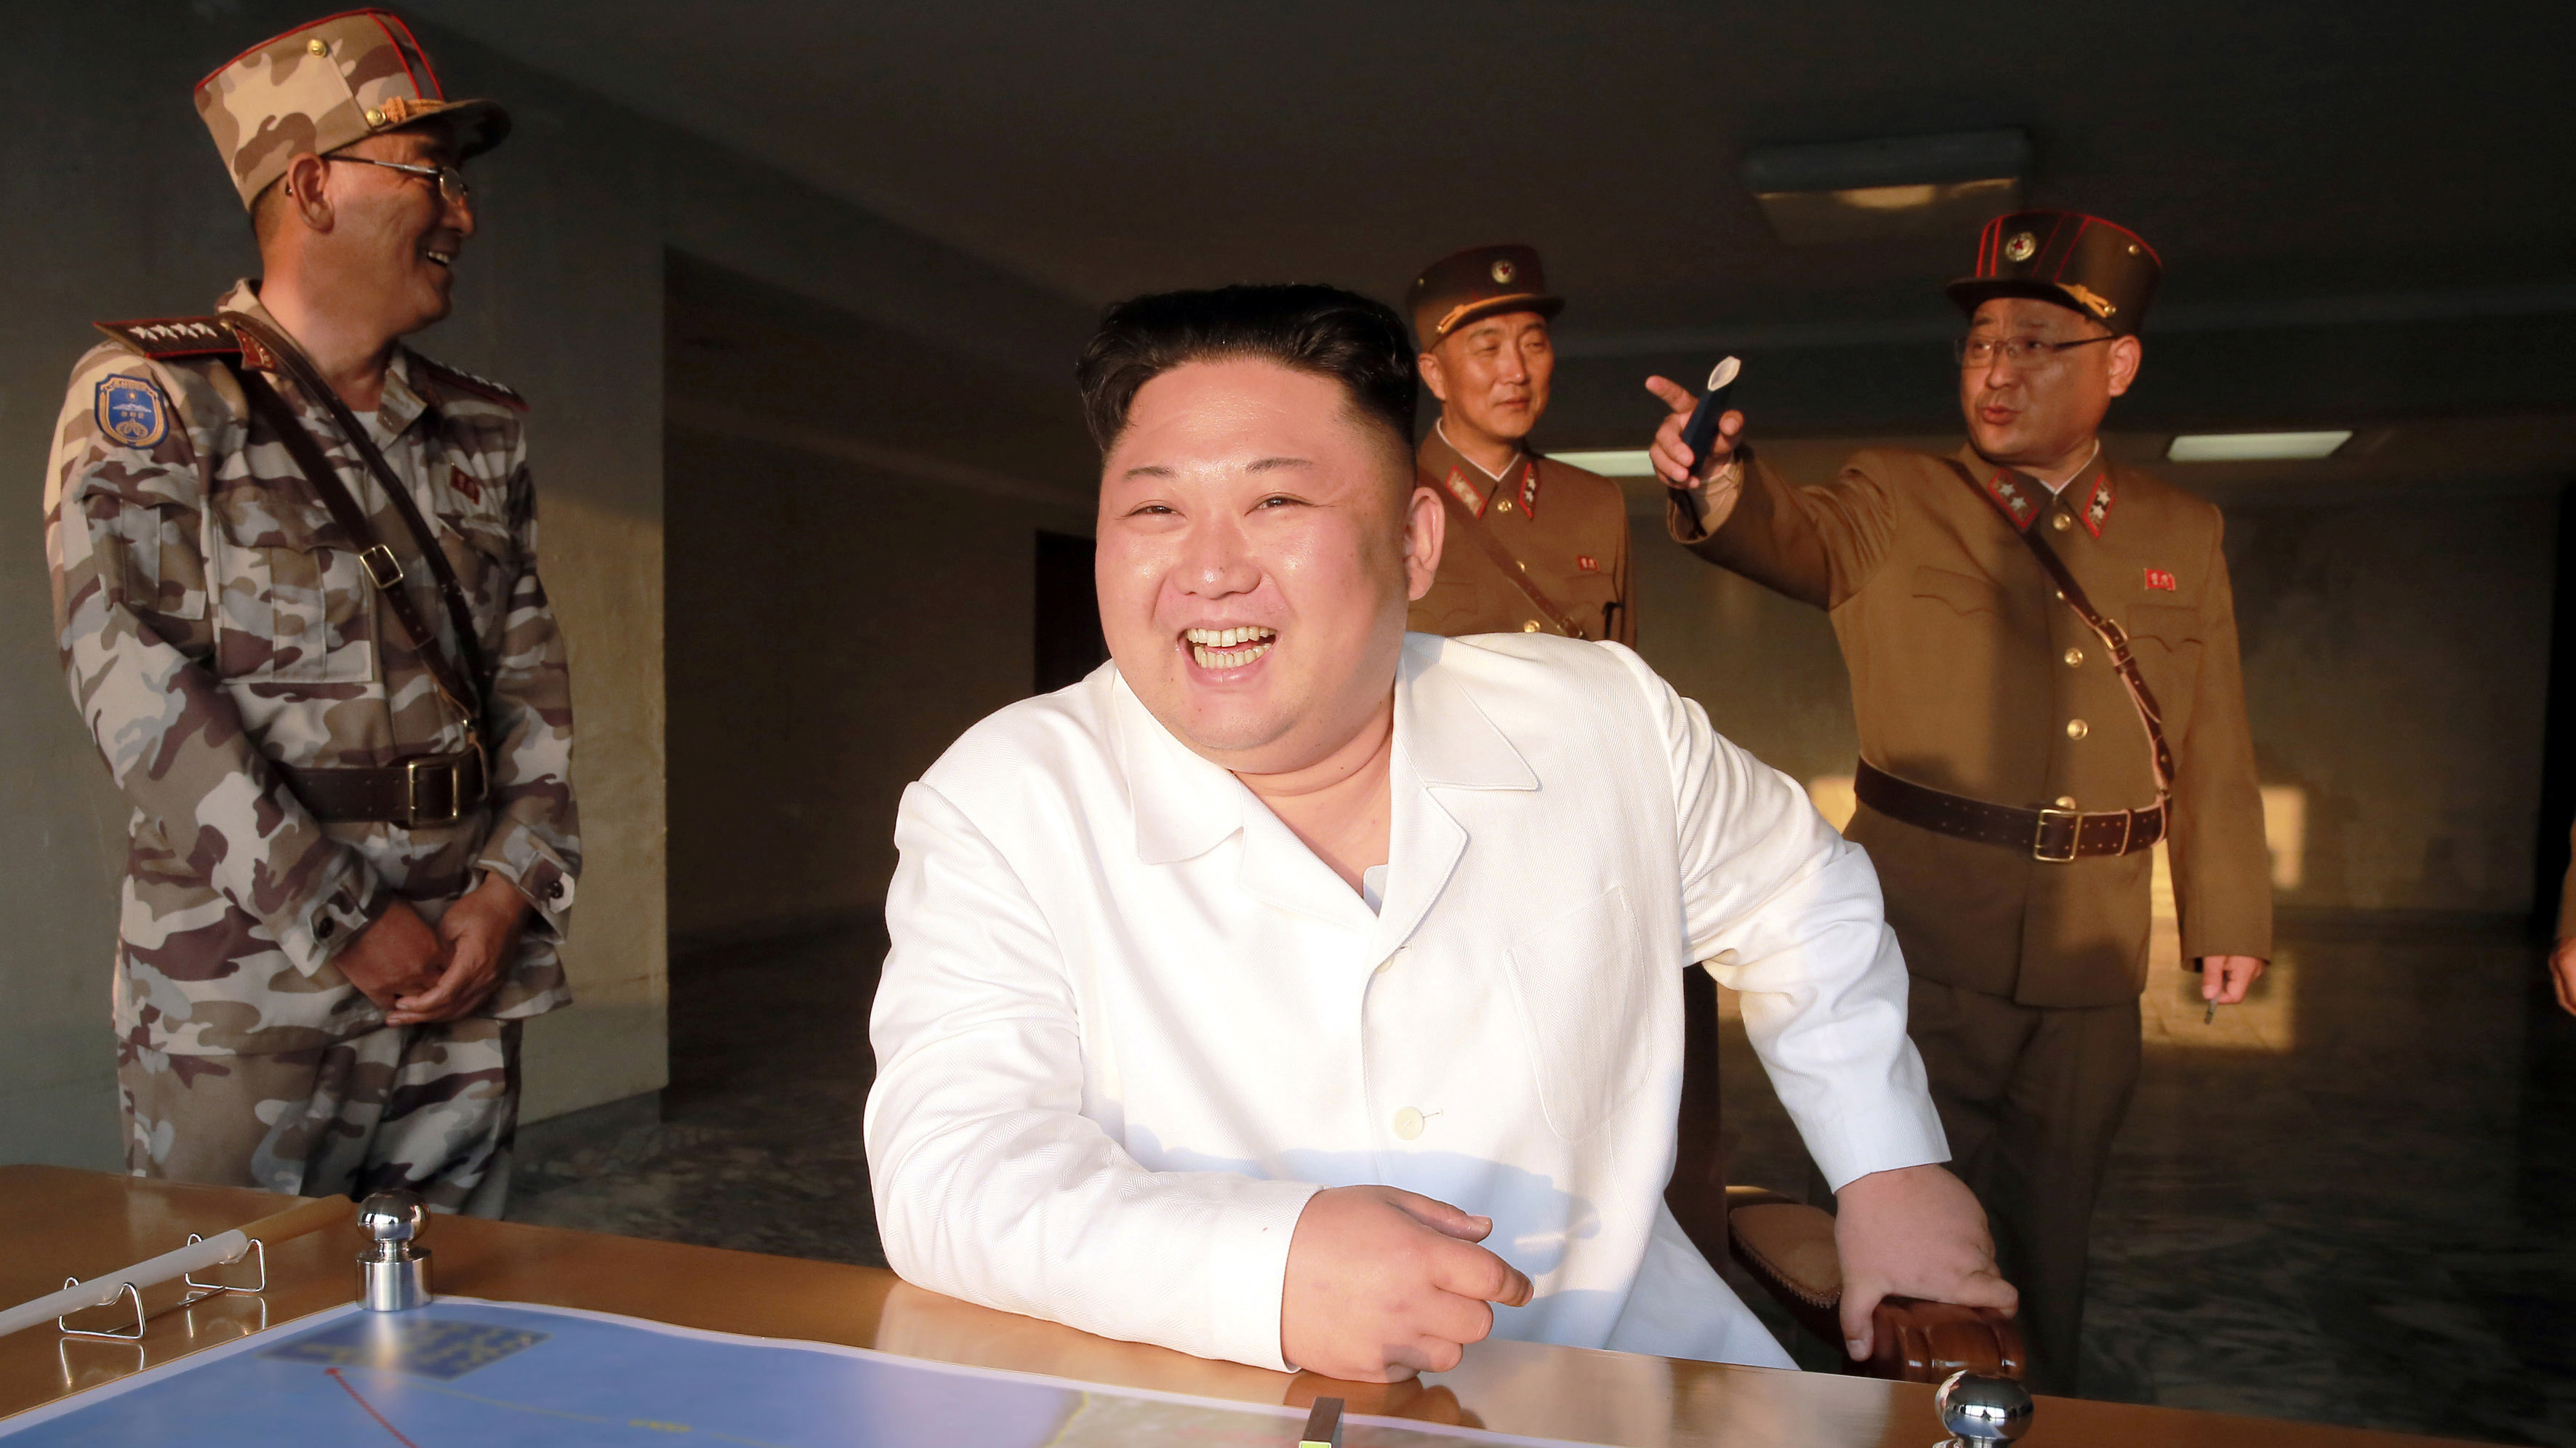 North Korean leader Kim Jong Un reacts during a ballistic rocket test-fire through a precision control guidance system in this undated photo released by North Korea's Korean Central News Agency (KCNA) May 30, 2017.